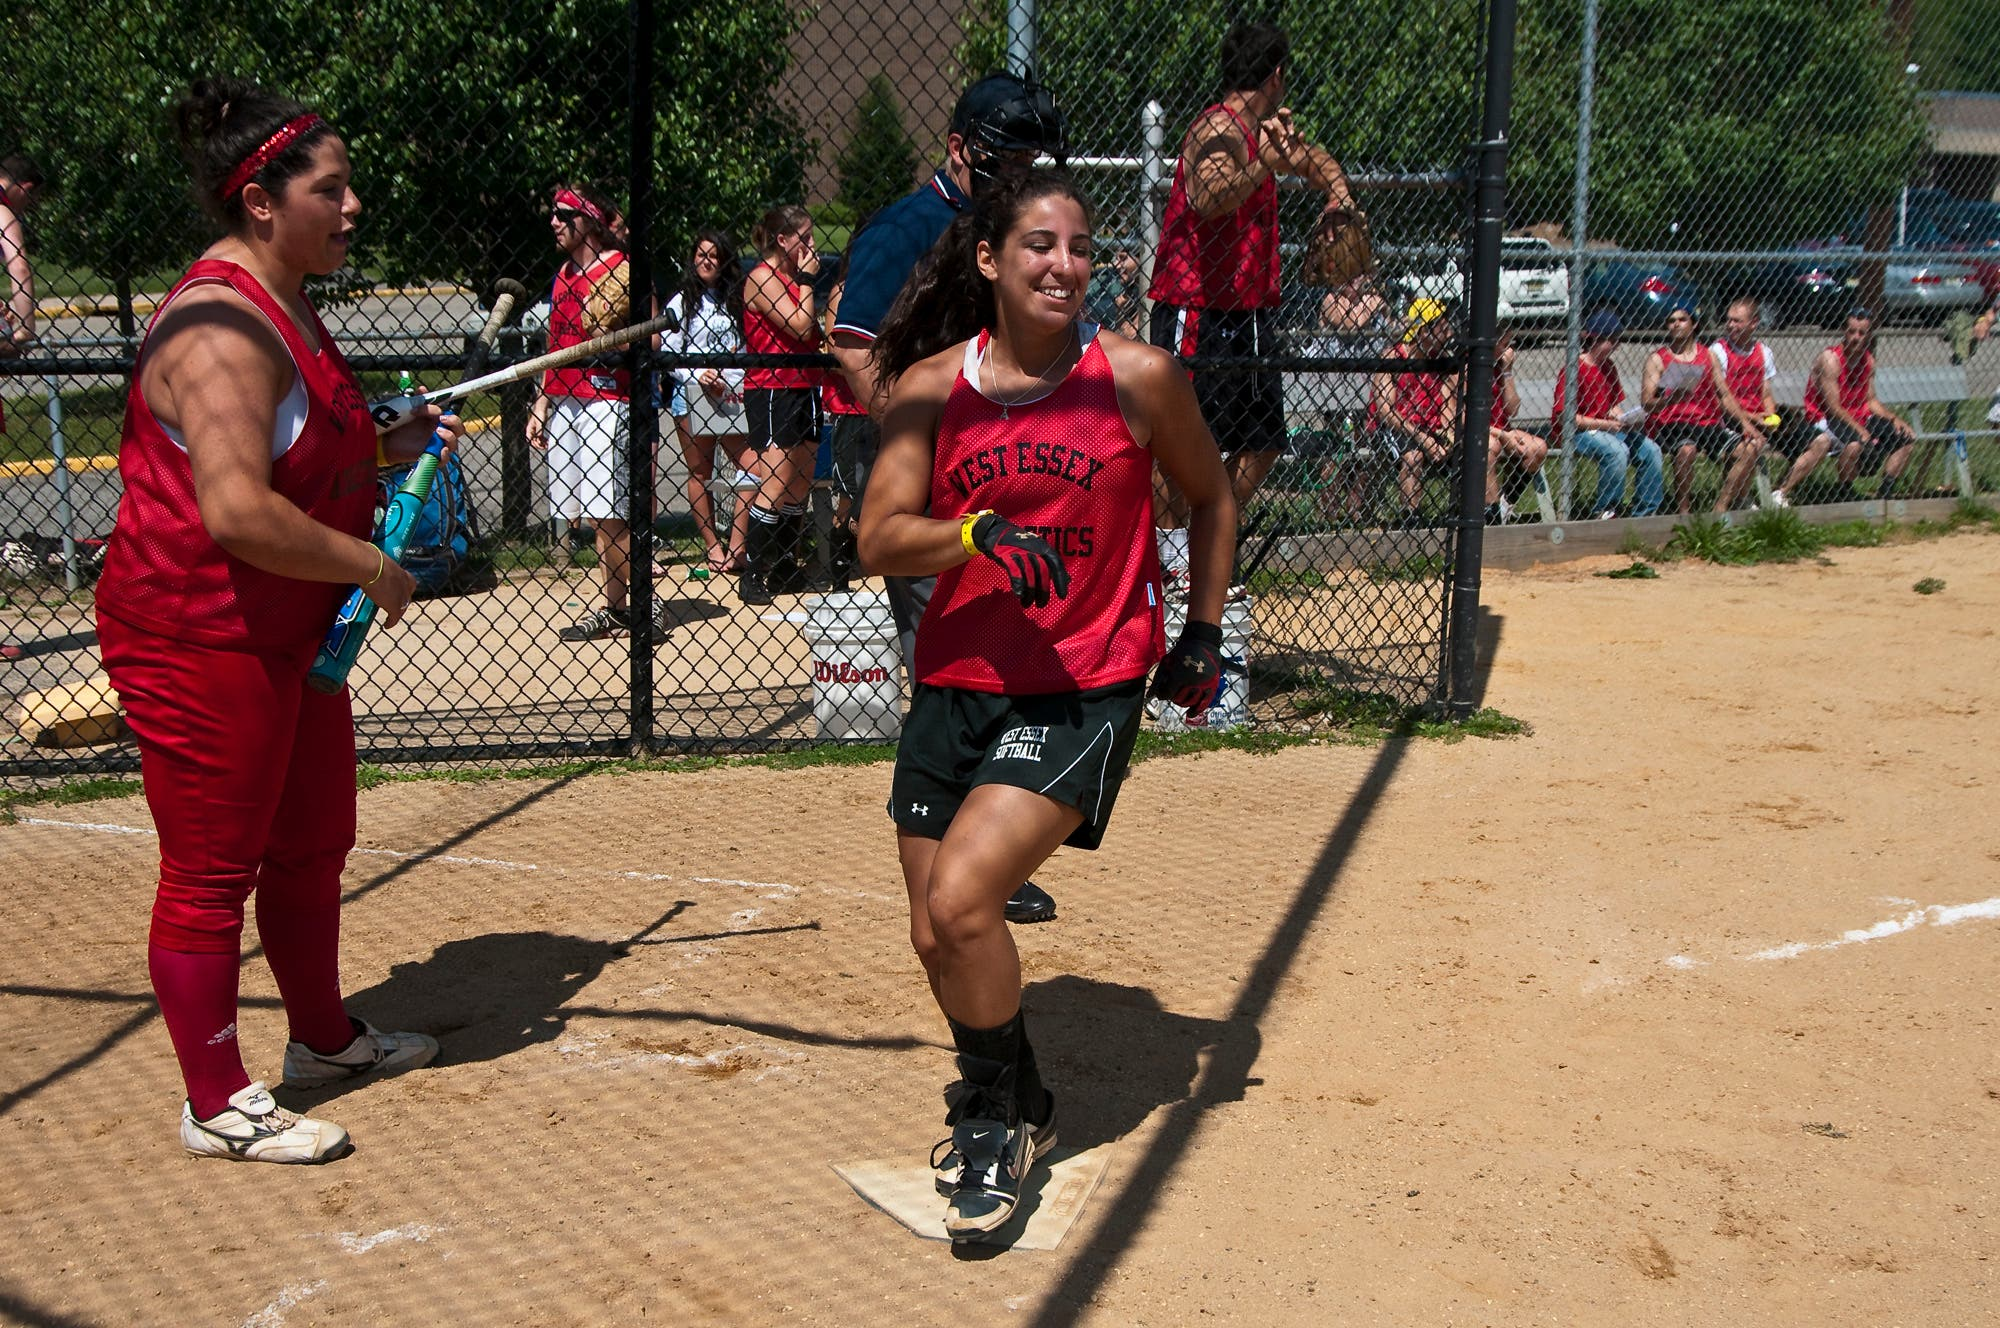 West Essex Faculty Schools Students in Softball | Caldwells